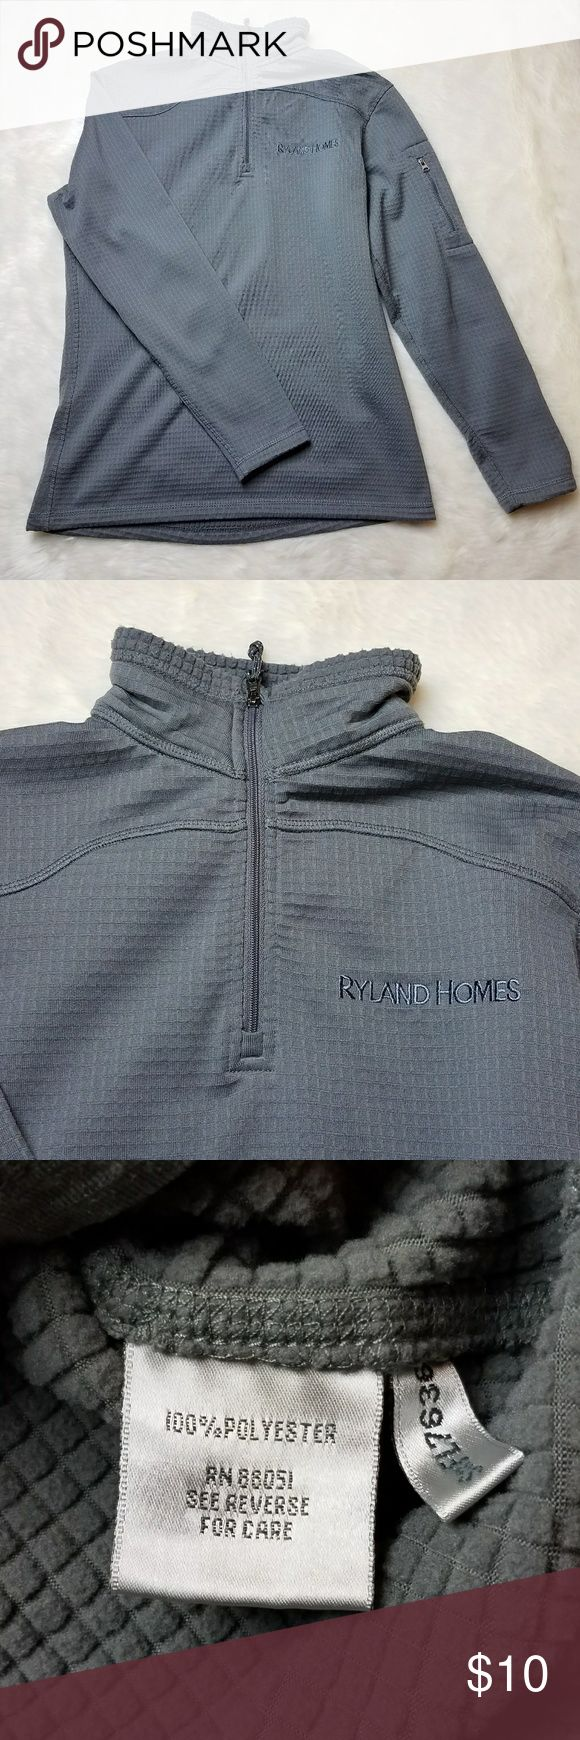 Ryland Homes Quarter Zip Fleece Shirt - Long sleeve - 100% polyester - Zipper on arm for keys/small items - Quarter Zip - Gentle preowned condition - No known flaws Tops Sweatshirts & Hoodies